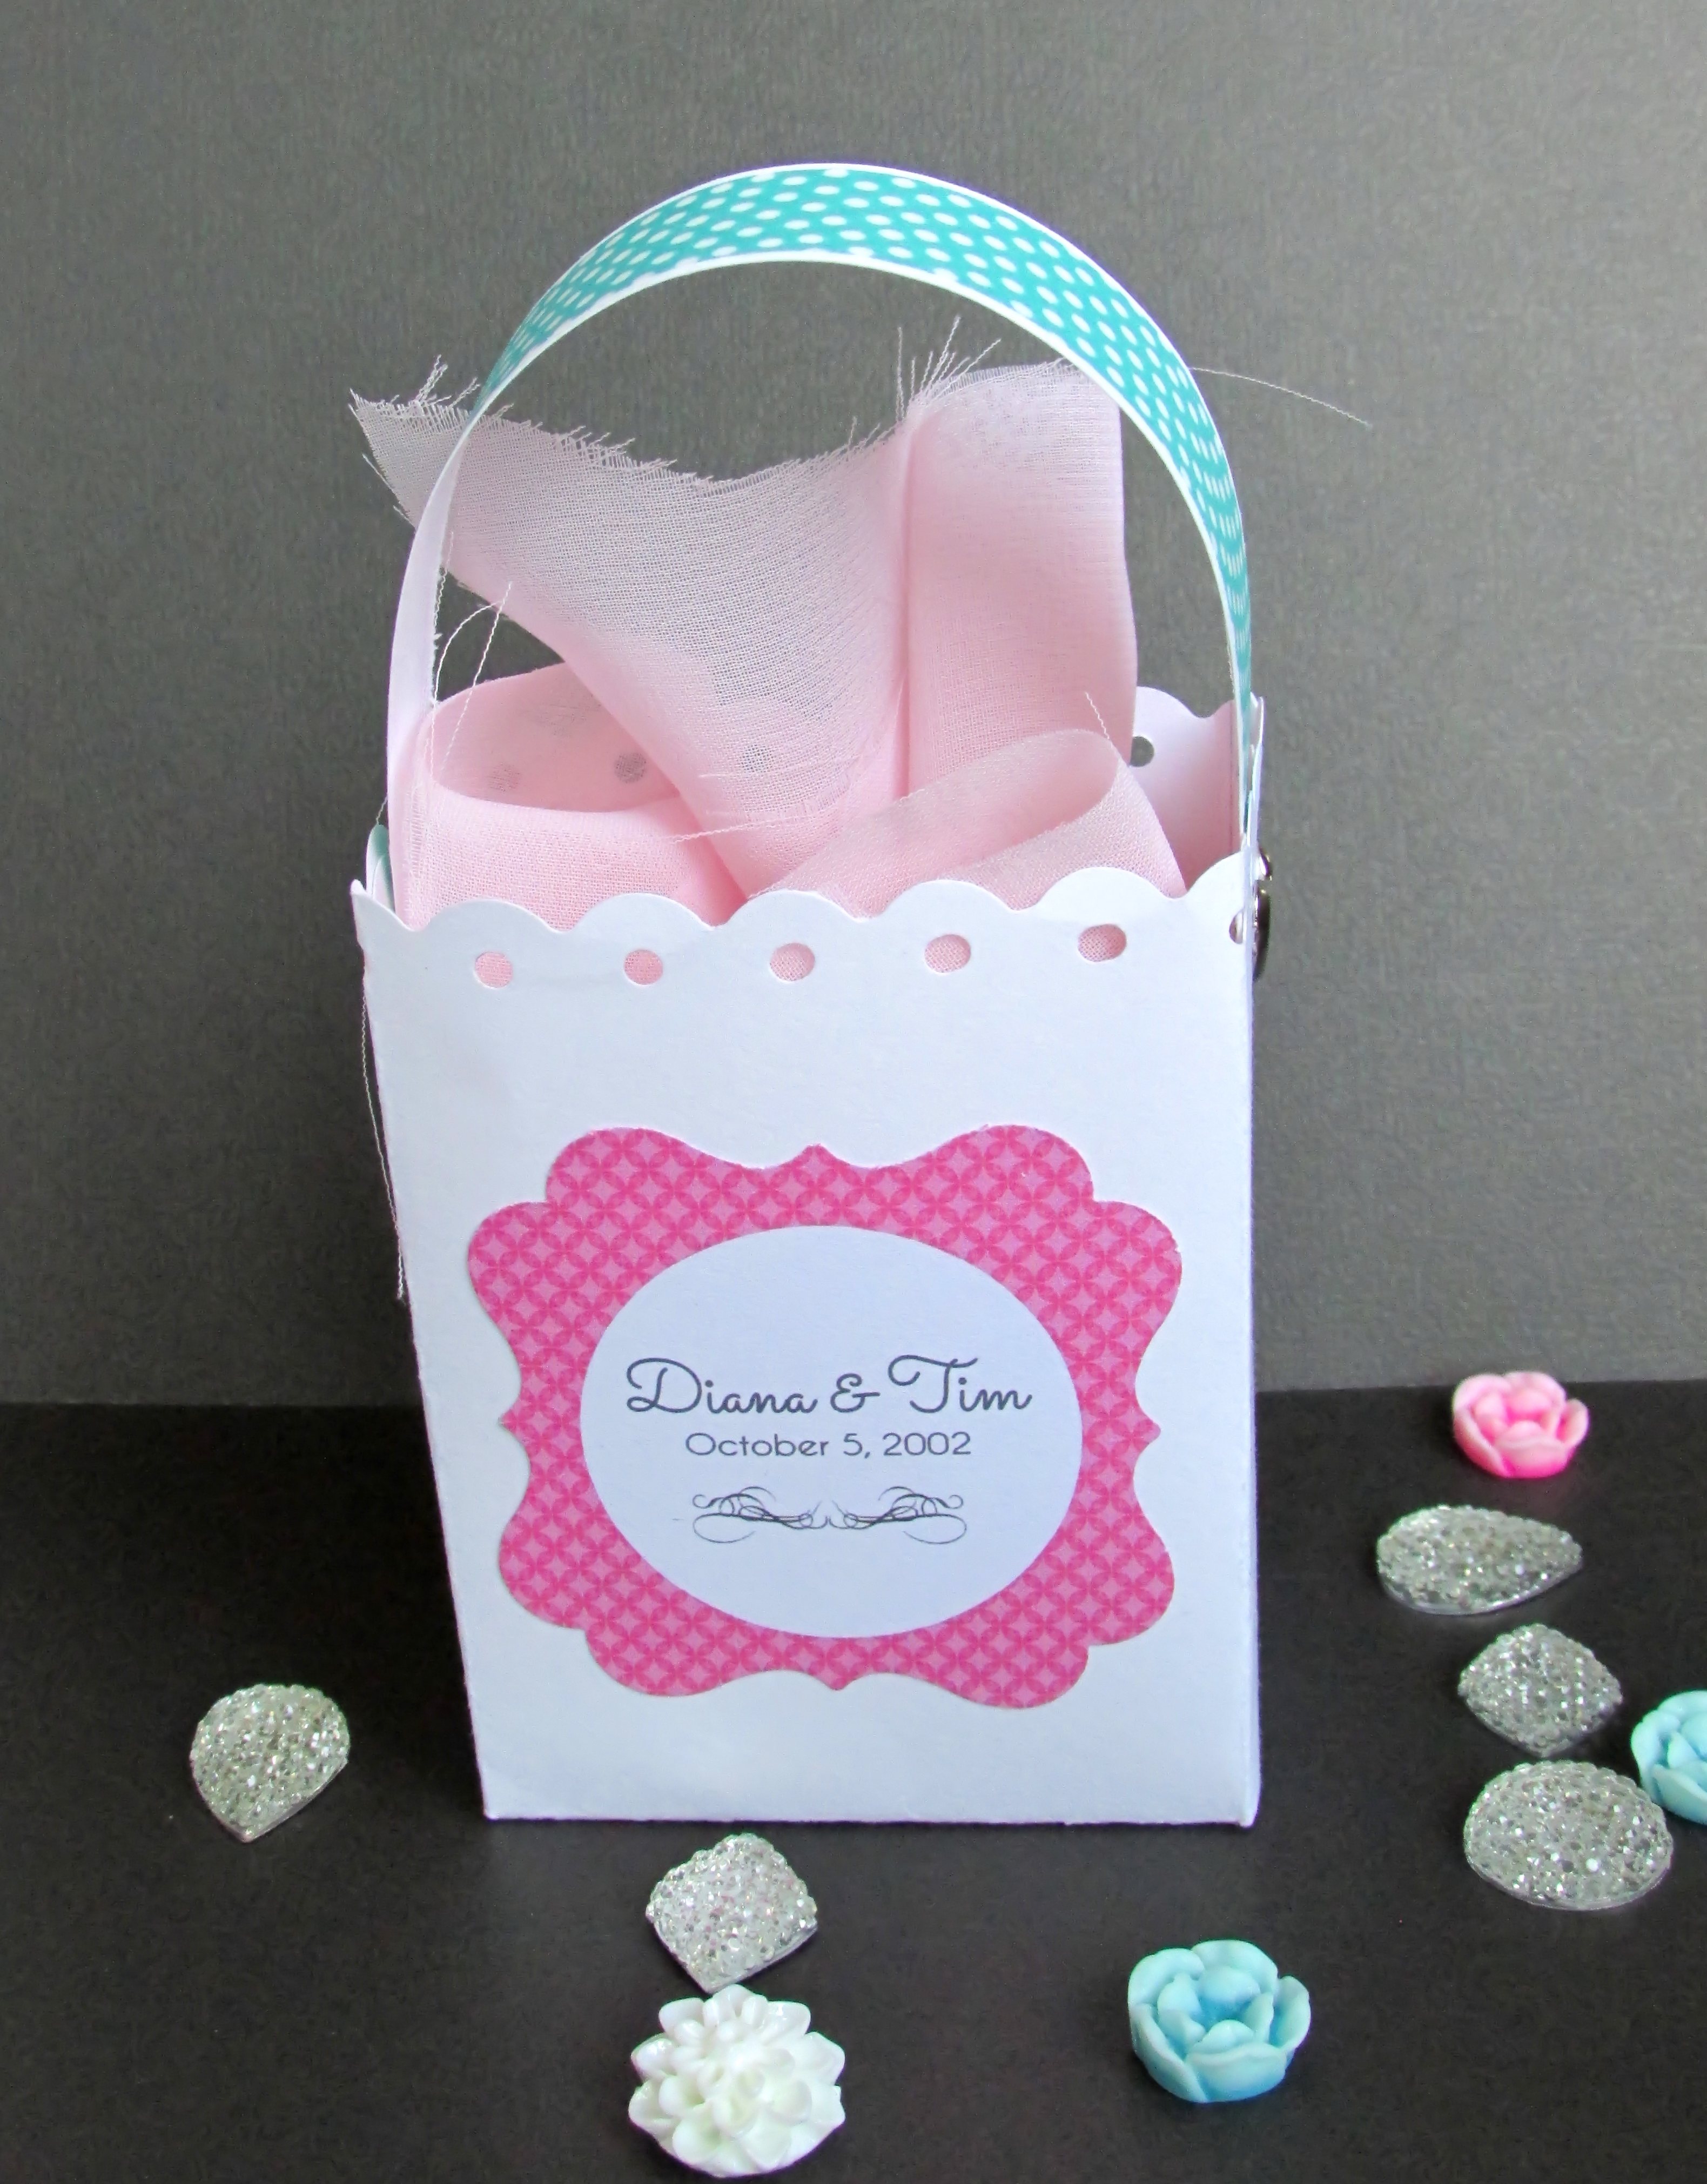 Wedding Favors on a Budget - Project Inspire